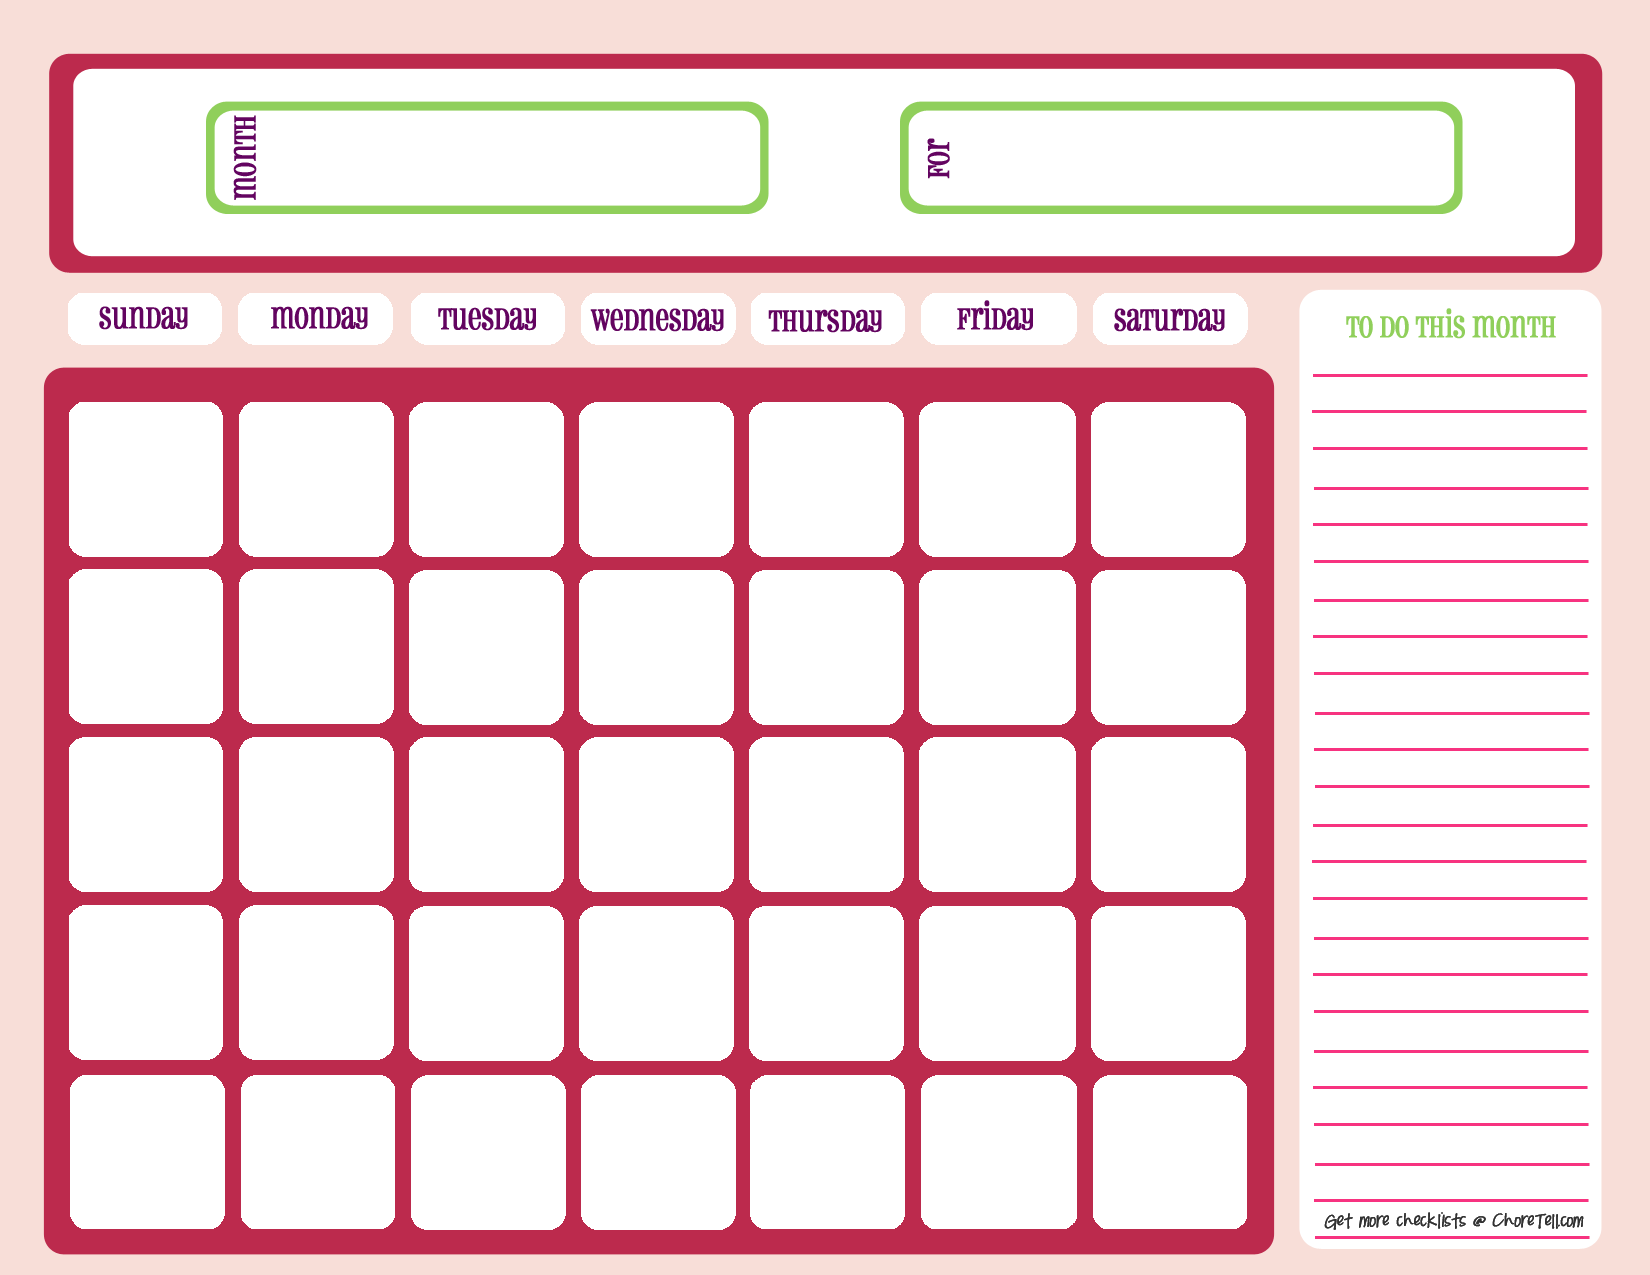 Calendar Planner Sample : Weekly planner template samples of schedule calendar